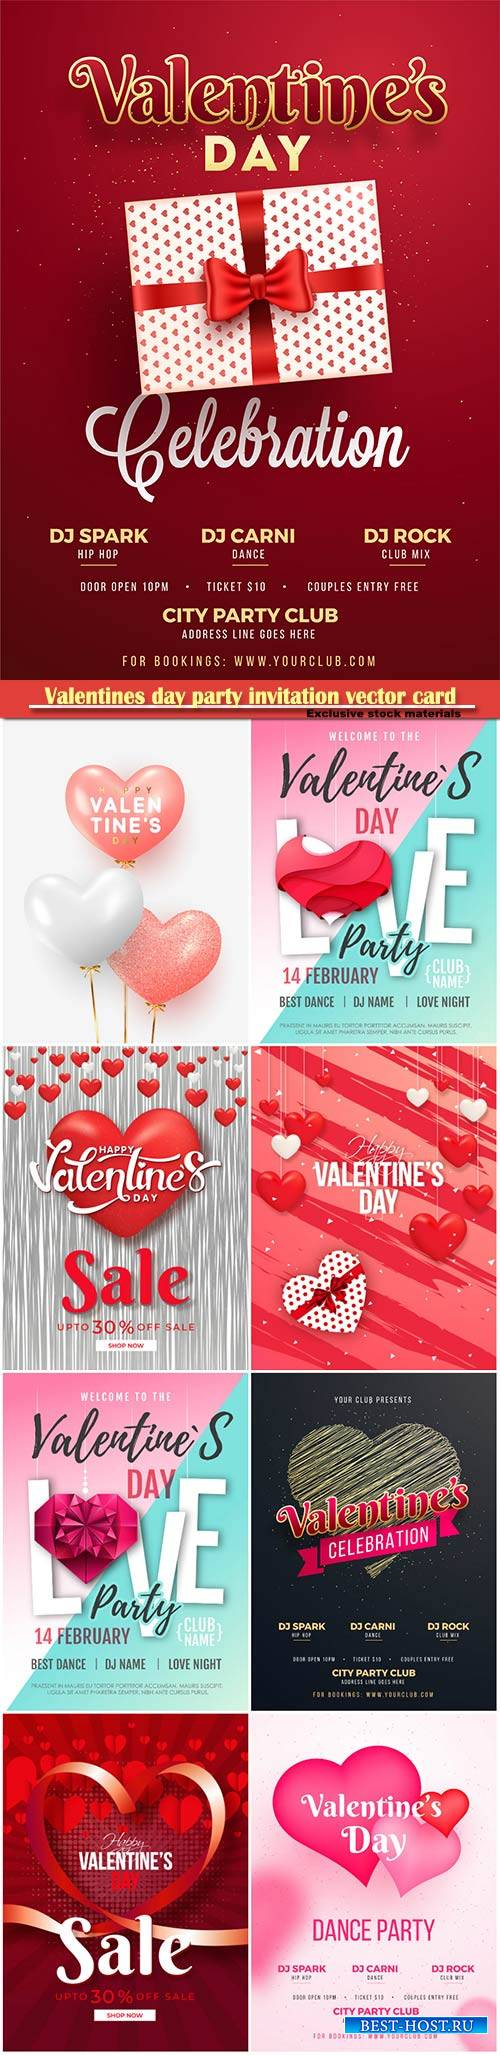 Valentines day party invitation vector card # 46